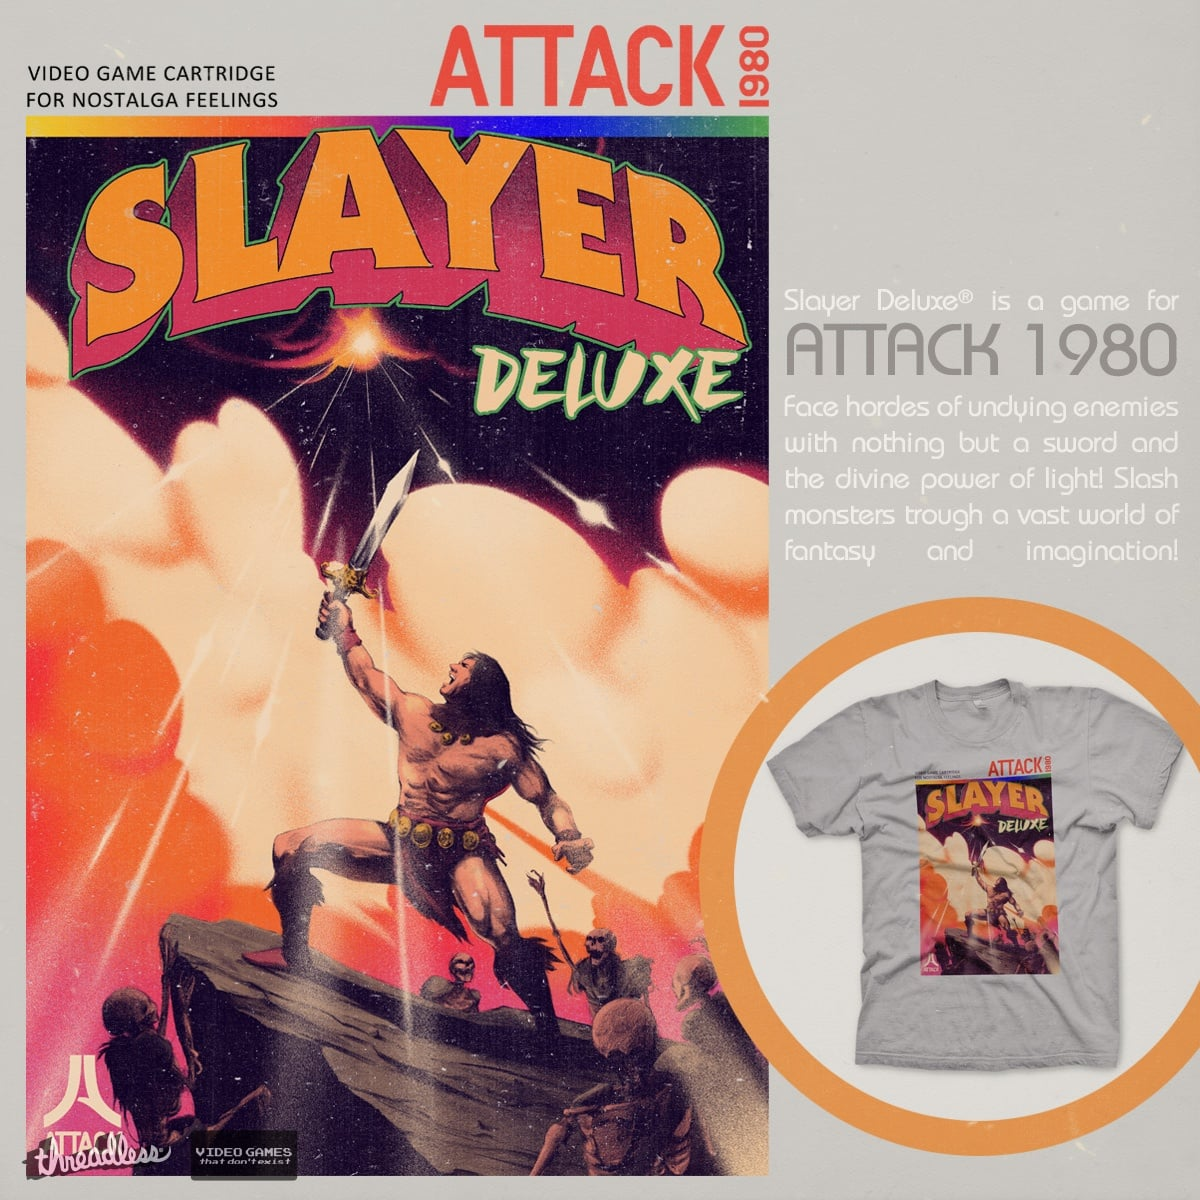 Slayer Deluxe by mathiole and hafaell on Threadless